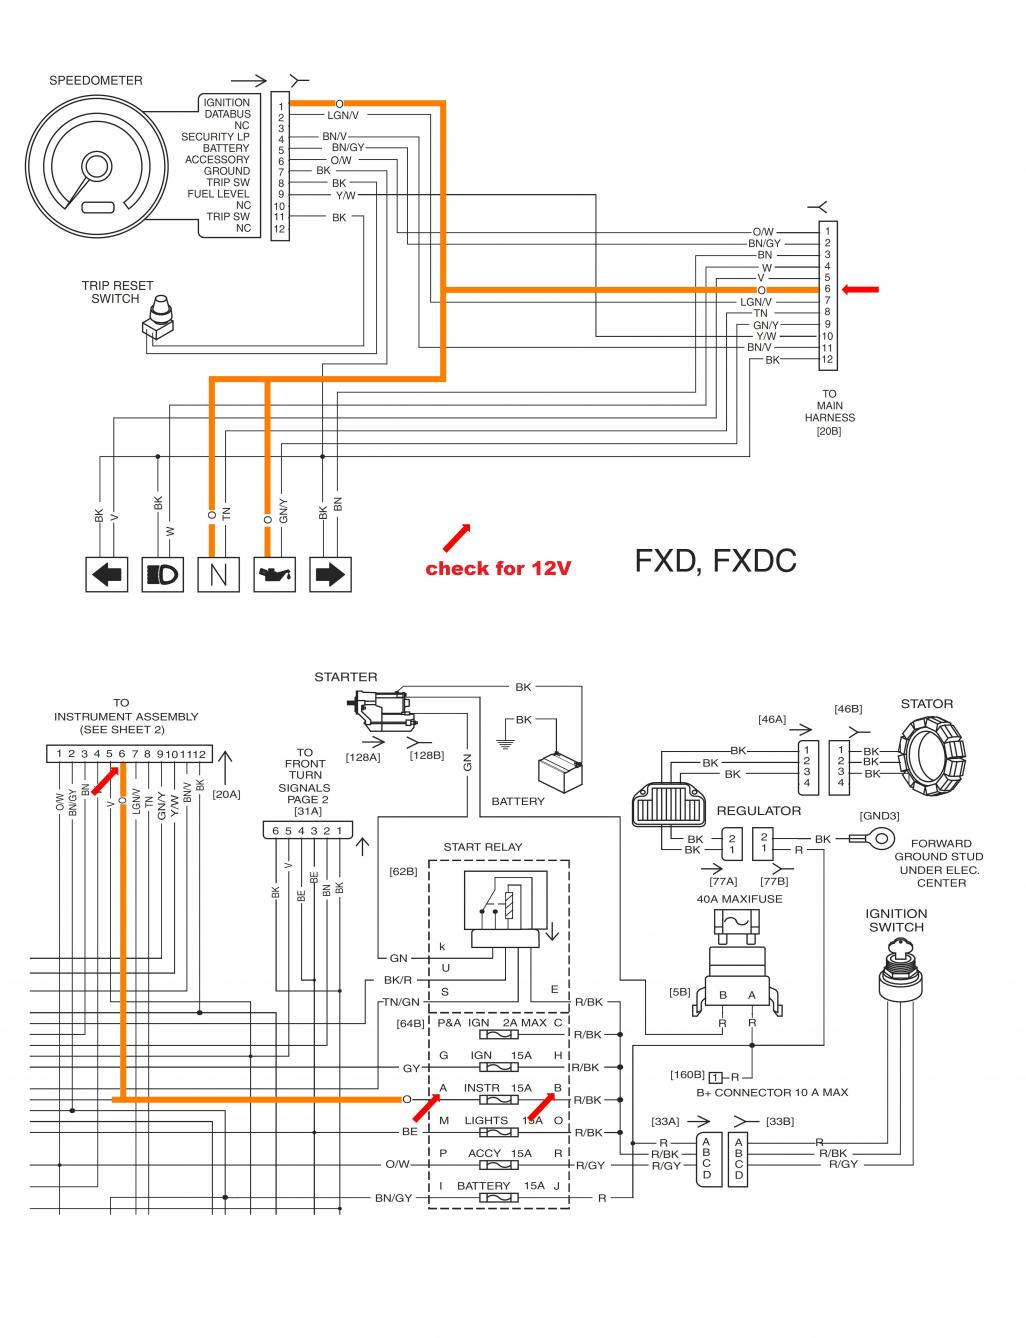 harley davidson wide glide wiring diagram with Harley Davidson Fxdwg Wiring Diagram on 476031 Dyna Models Wiring Diagram Links Index Part 1 A 10 likewise Wiring Diagram 2002 Harley Davidson Fatboy besides Wiring Diagram For 2002 Harley Dyna Glide moreover Basic Chopper Wiring Diagram Motorcycle likewise Harley Softail Headlight Wiring Harness.